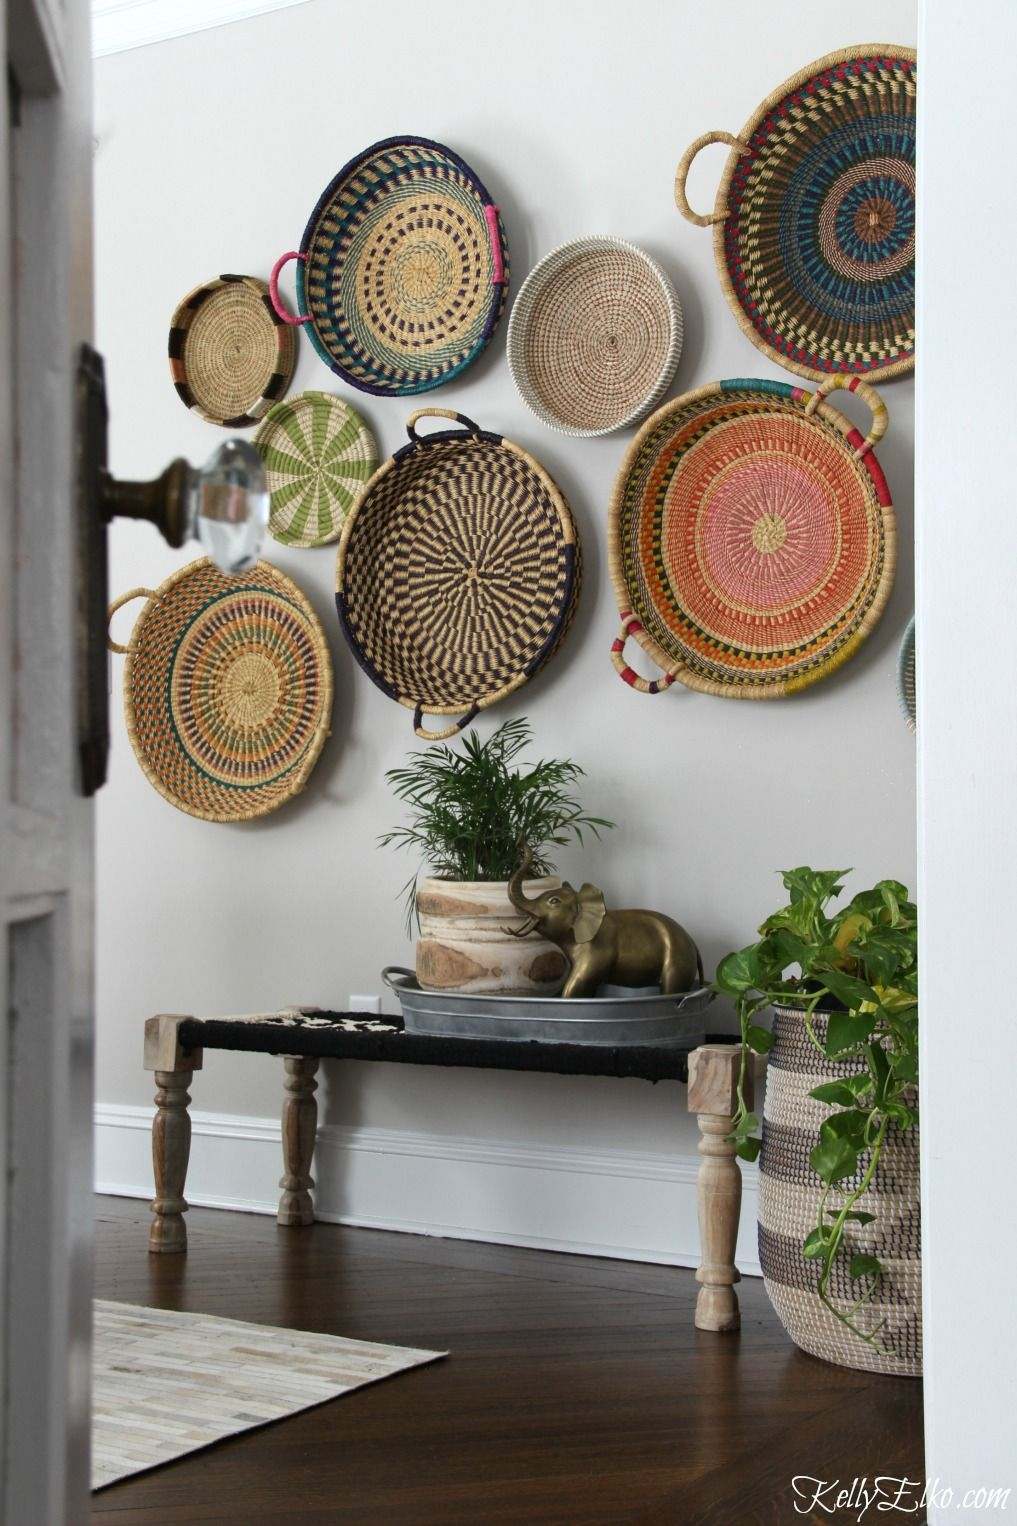 Colorful Basket Gallery Wall Wall Decor Living Room Room Wall